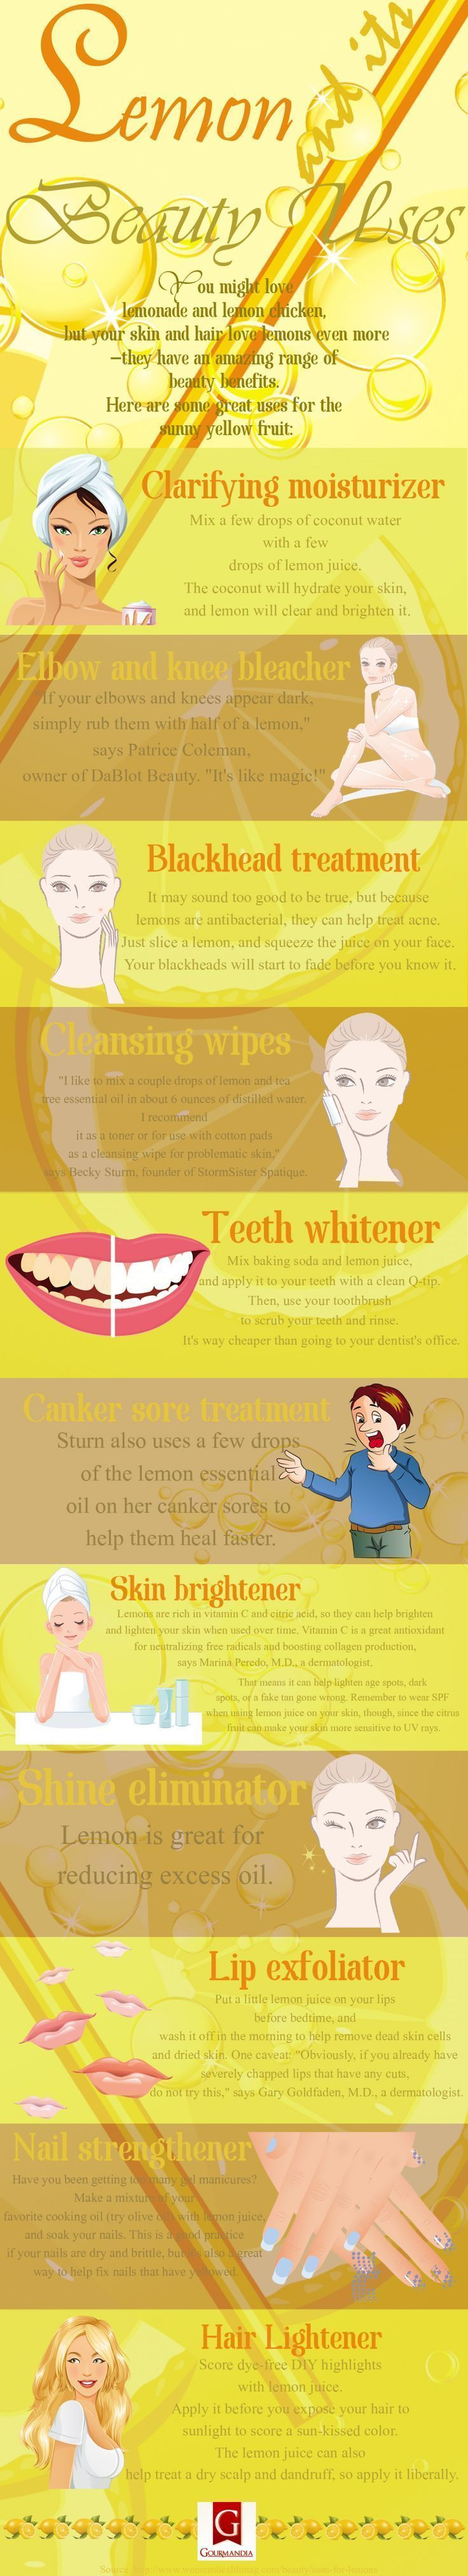 11 Beauty Benefits of Lemons, check it out at http://makeuptutorials.com/benefits-of-lemons-makeup-tutorials/ ‎